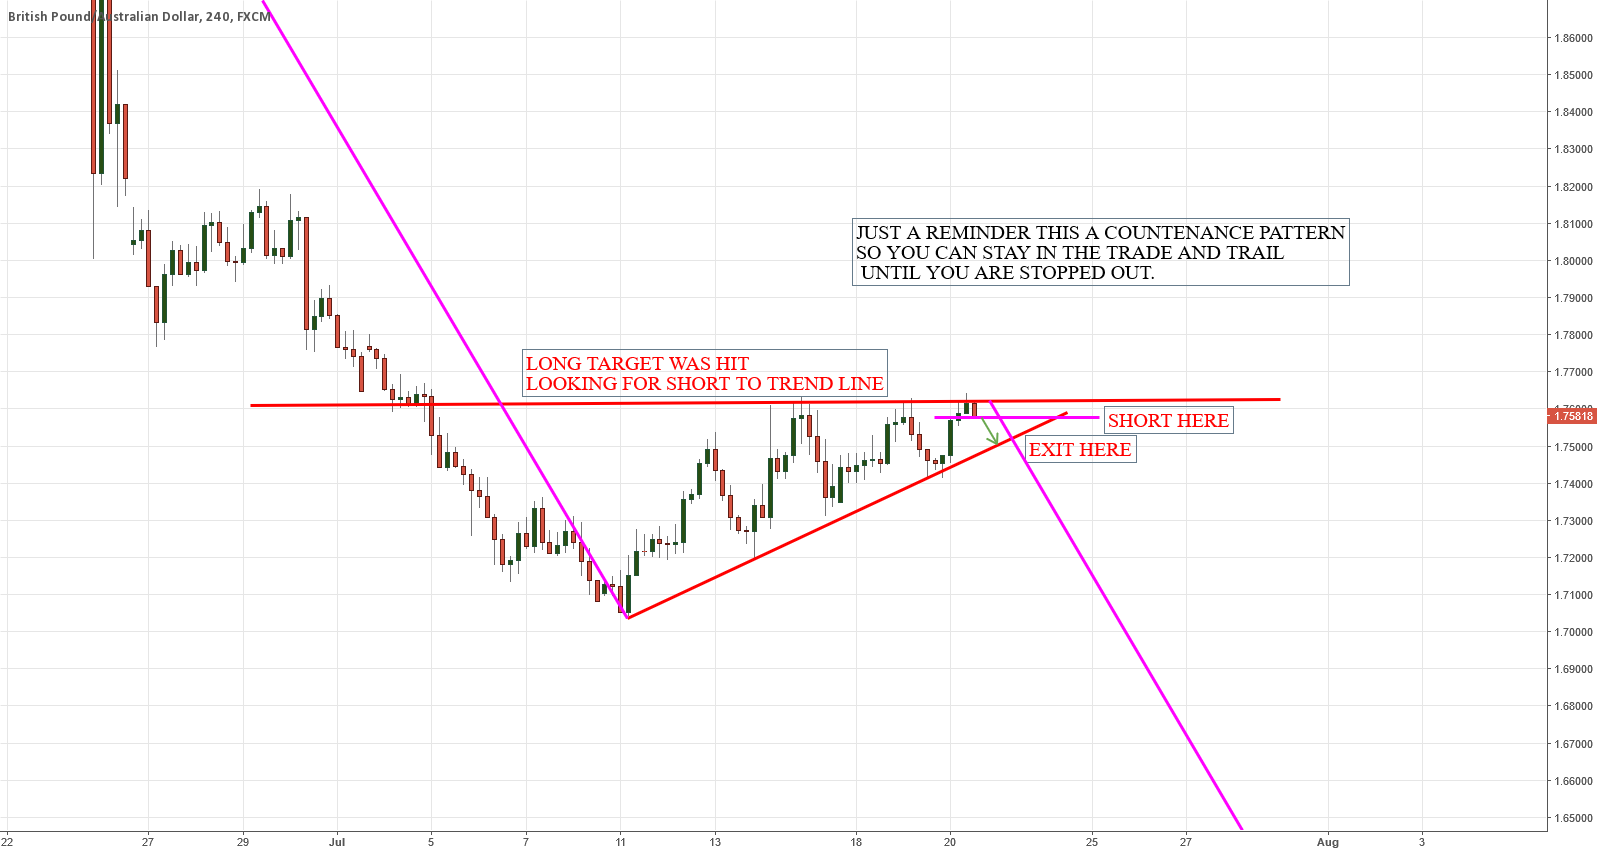 GBPAUD LONG TERM TRADE